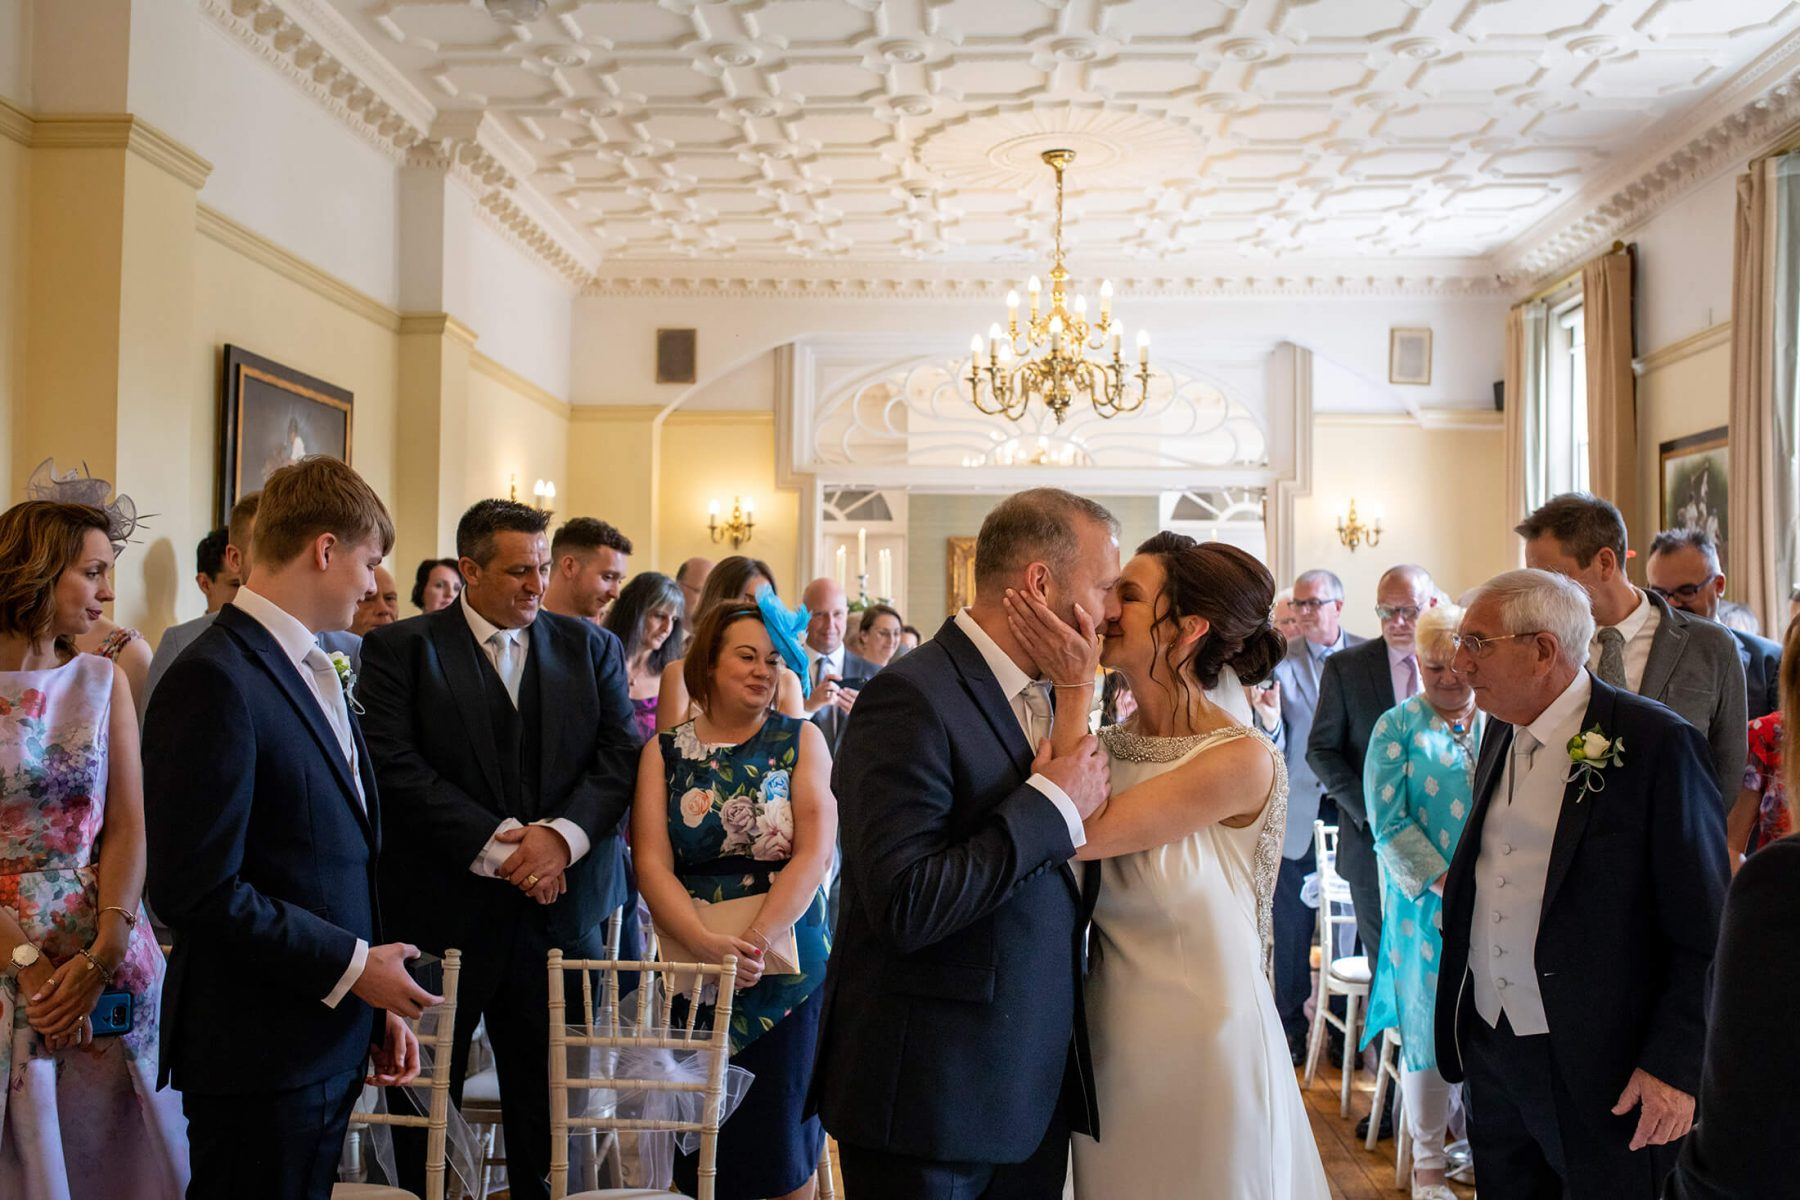 A bride kisses her fiancé at the start of their wedding ceremony